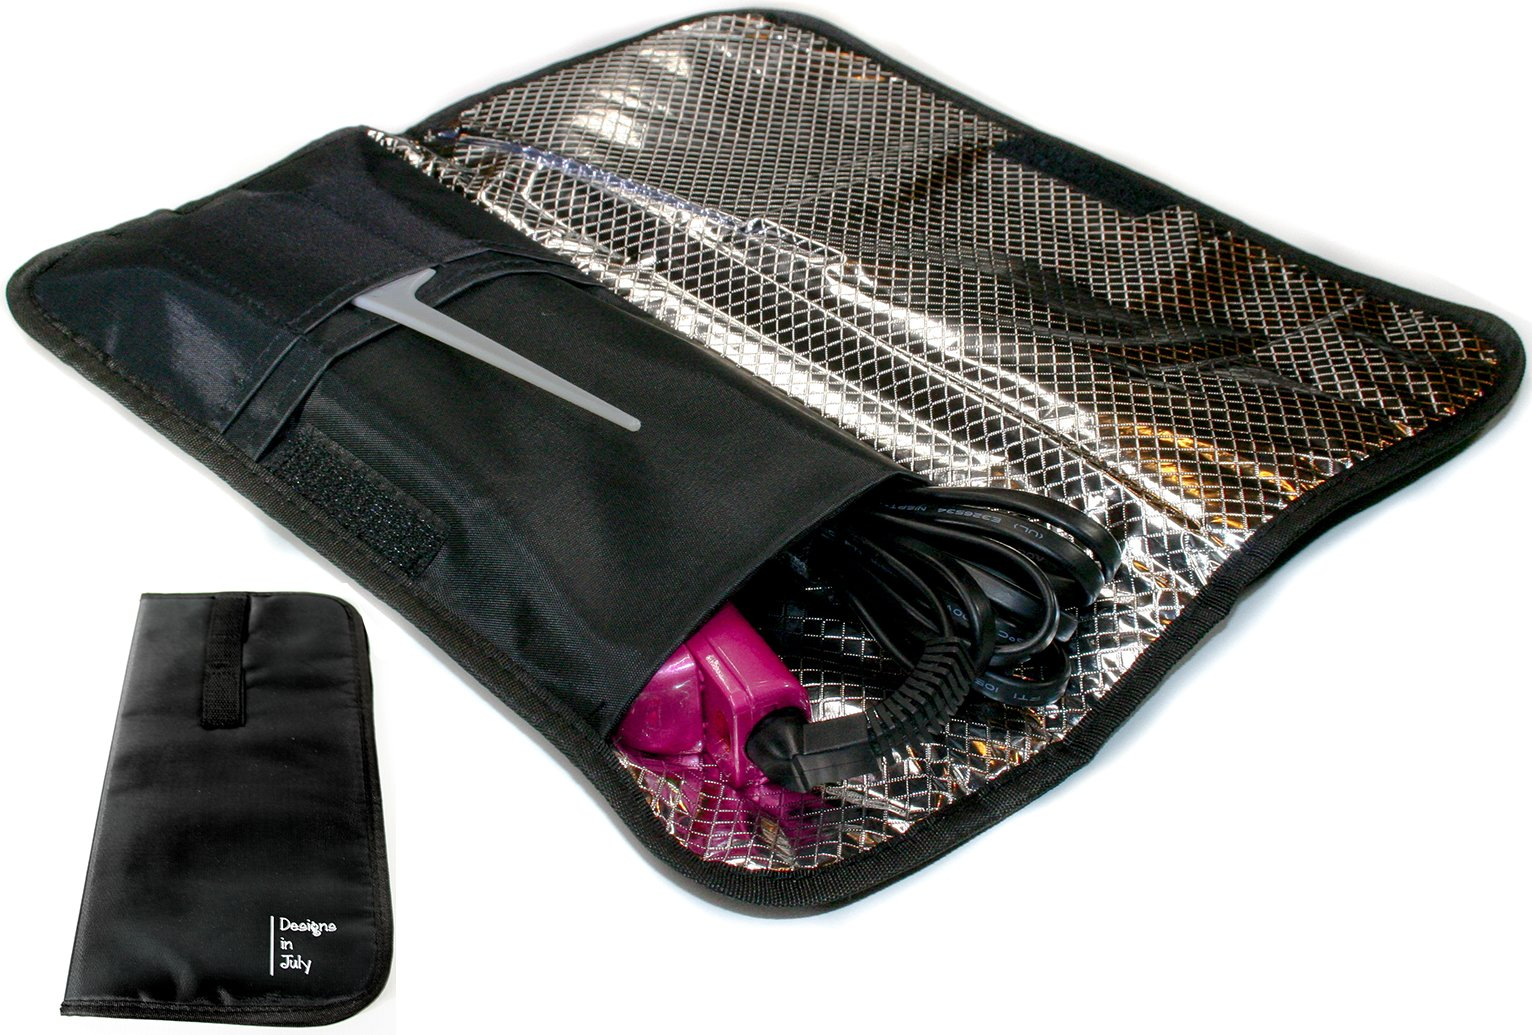 Designs In July Flat Iron Case. Color Option Heat-Resistant Travel Case With Straps for Curling Iron or Hair Straightener. Black